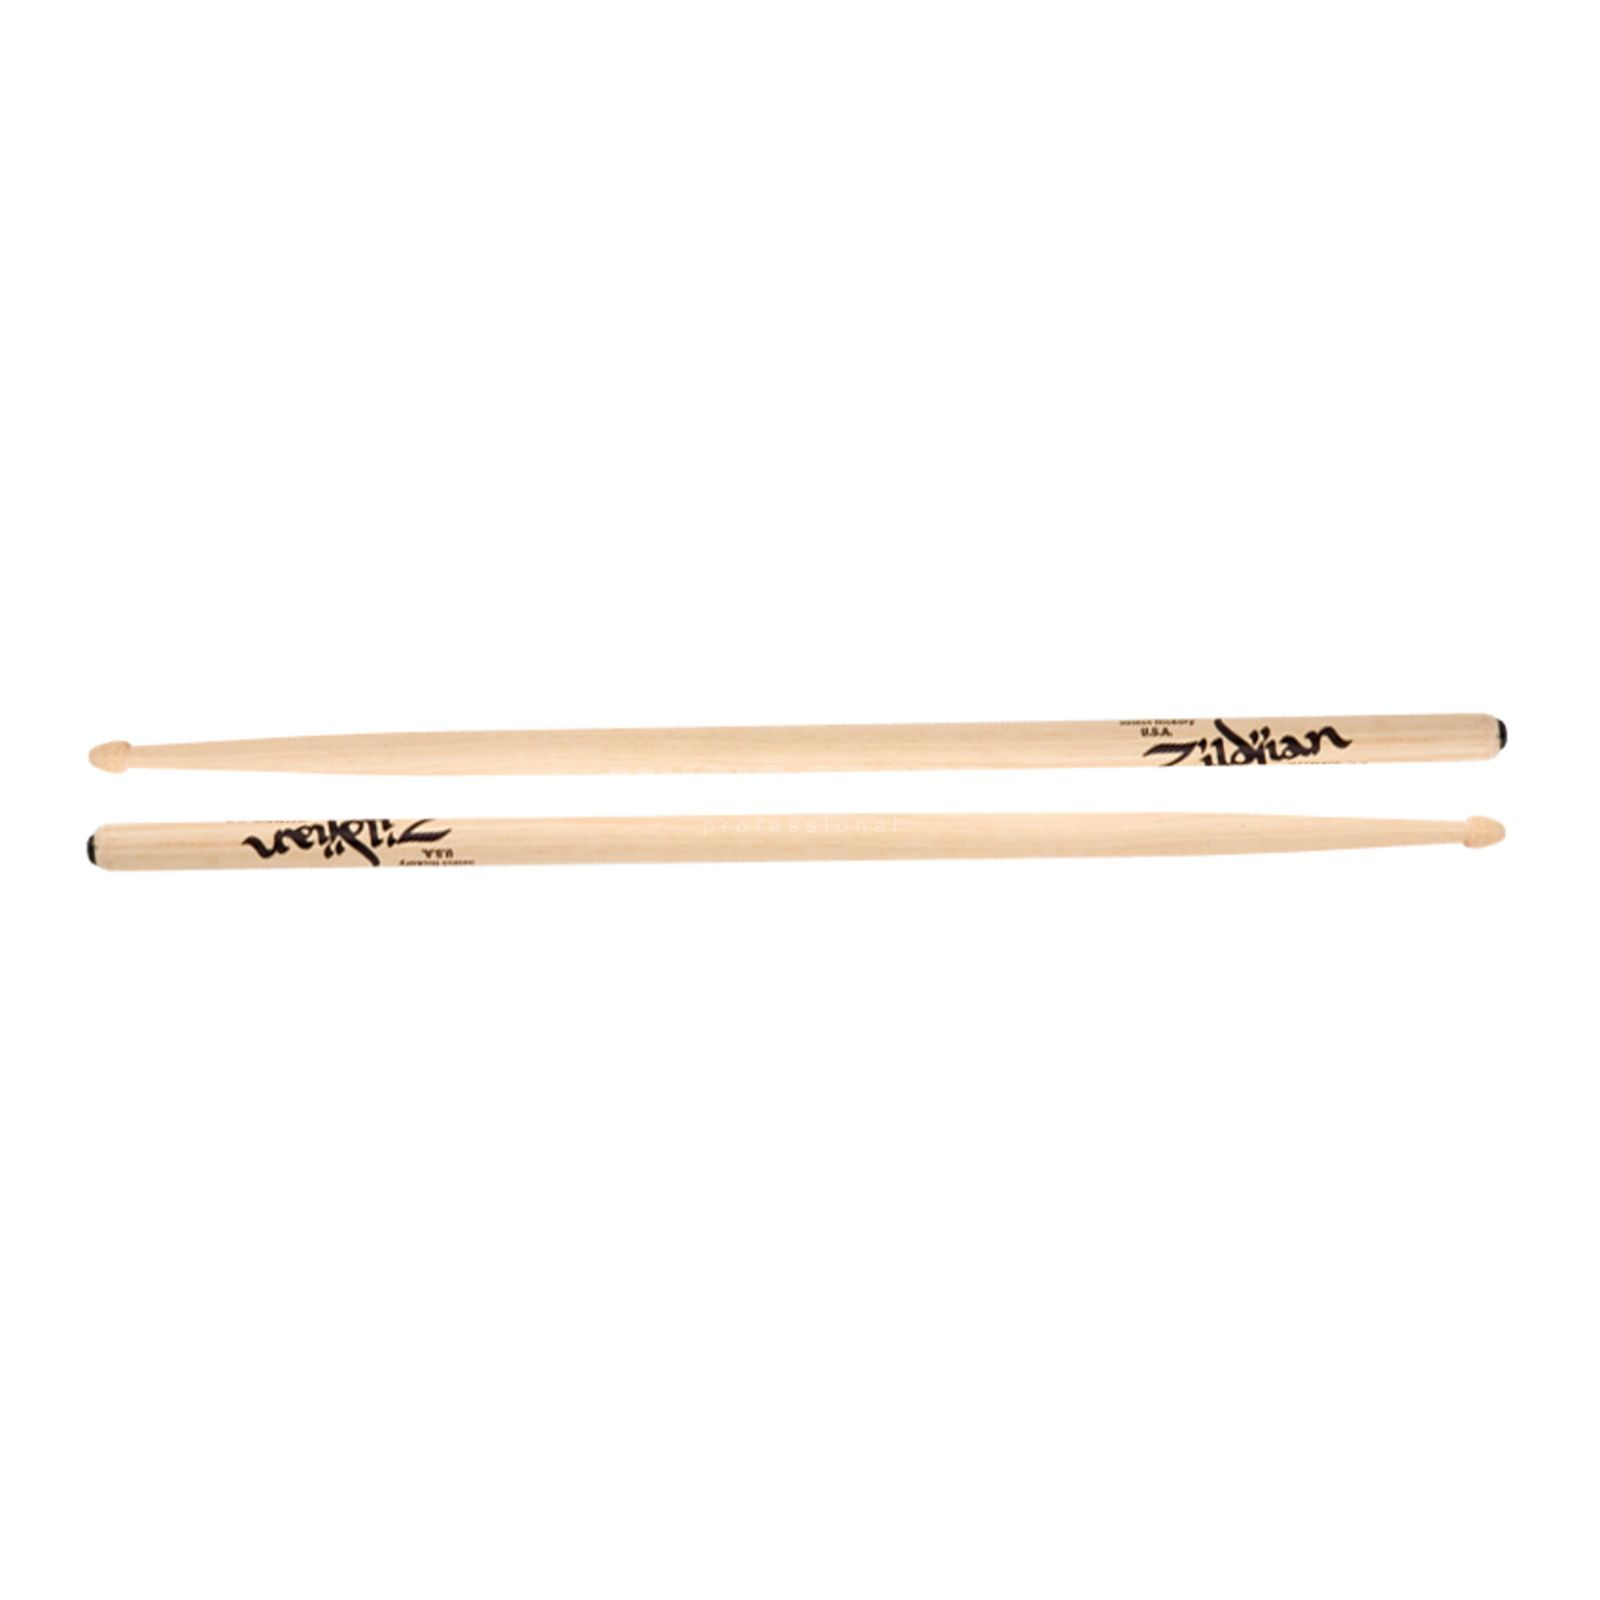 Zildjian Anti-Vibe Super 5A Sticks, Wood Tip Produktbillede